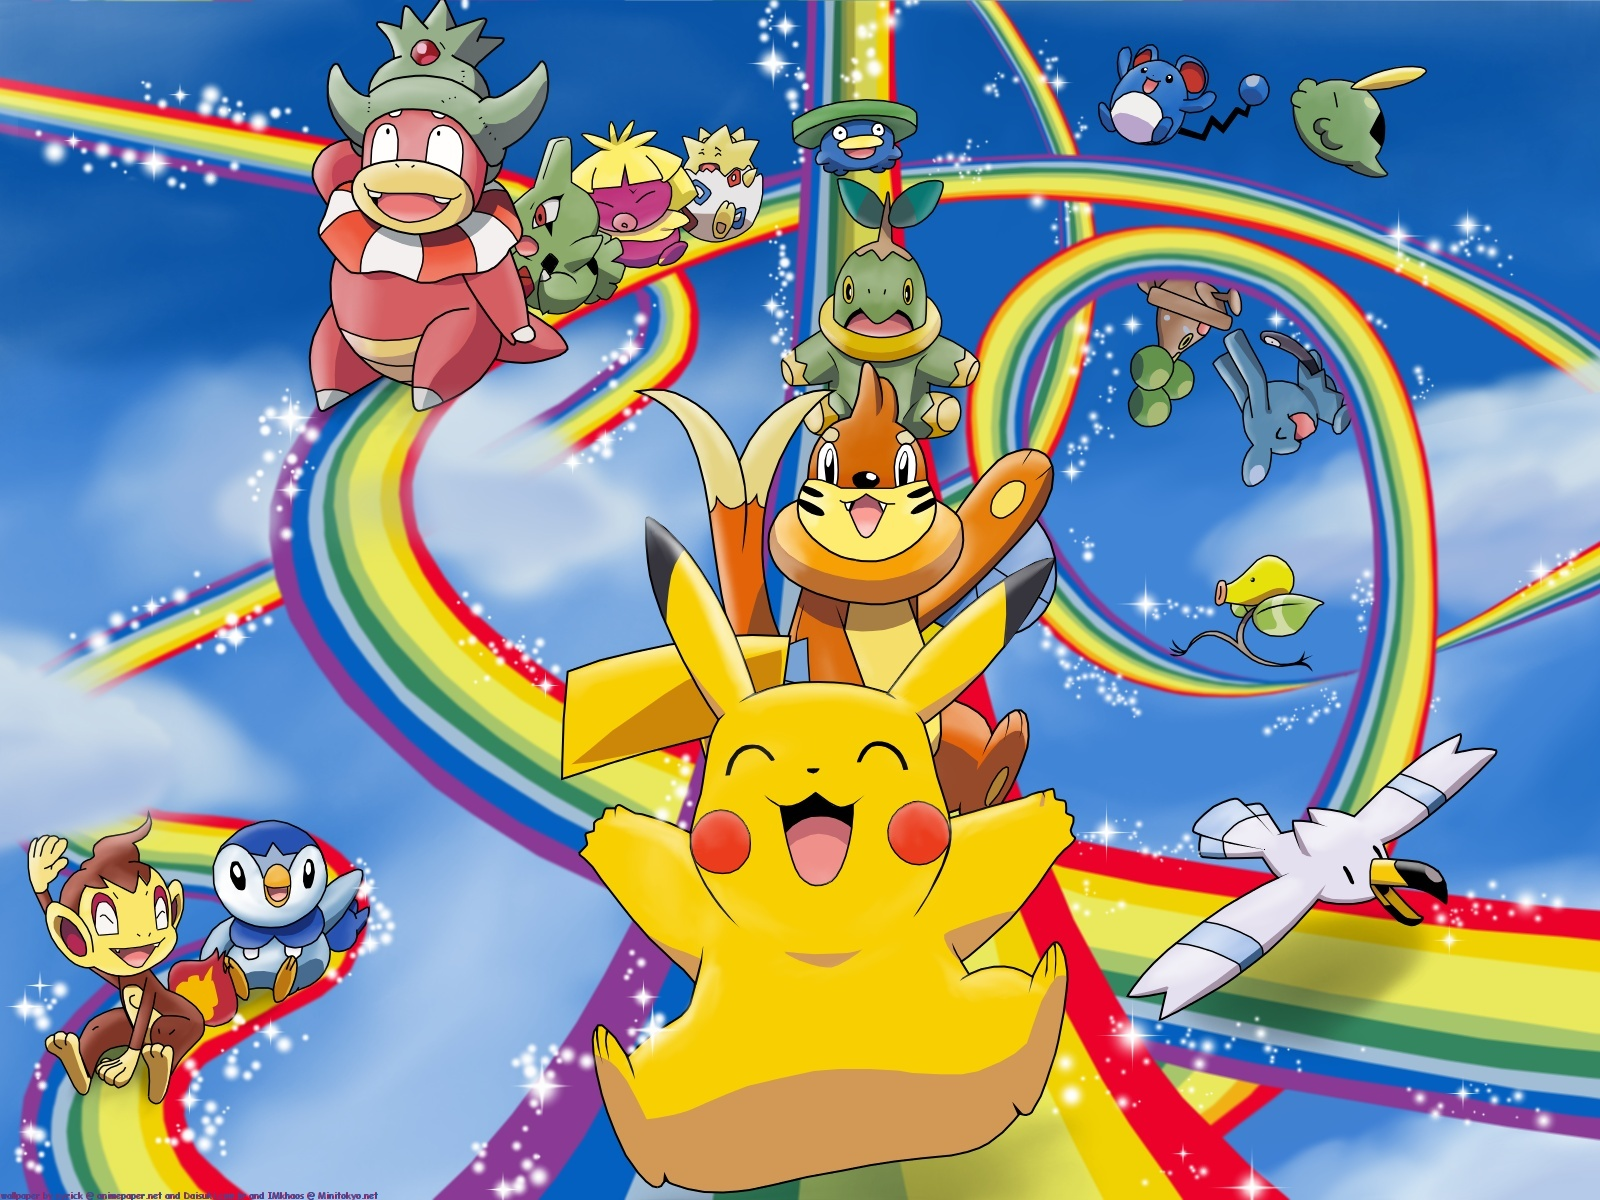 Pokemon Pikachu rainbows